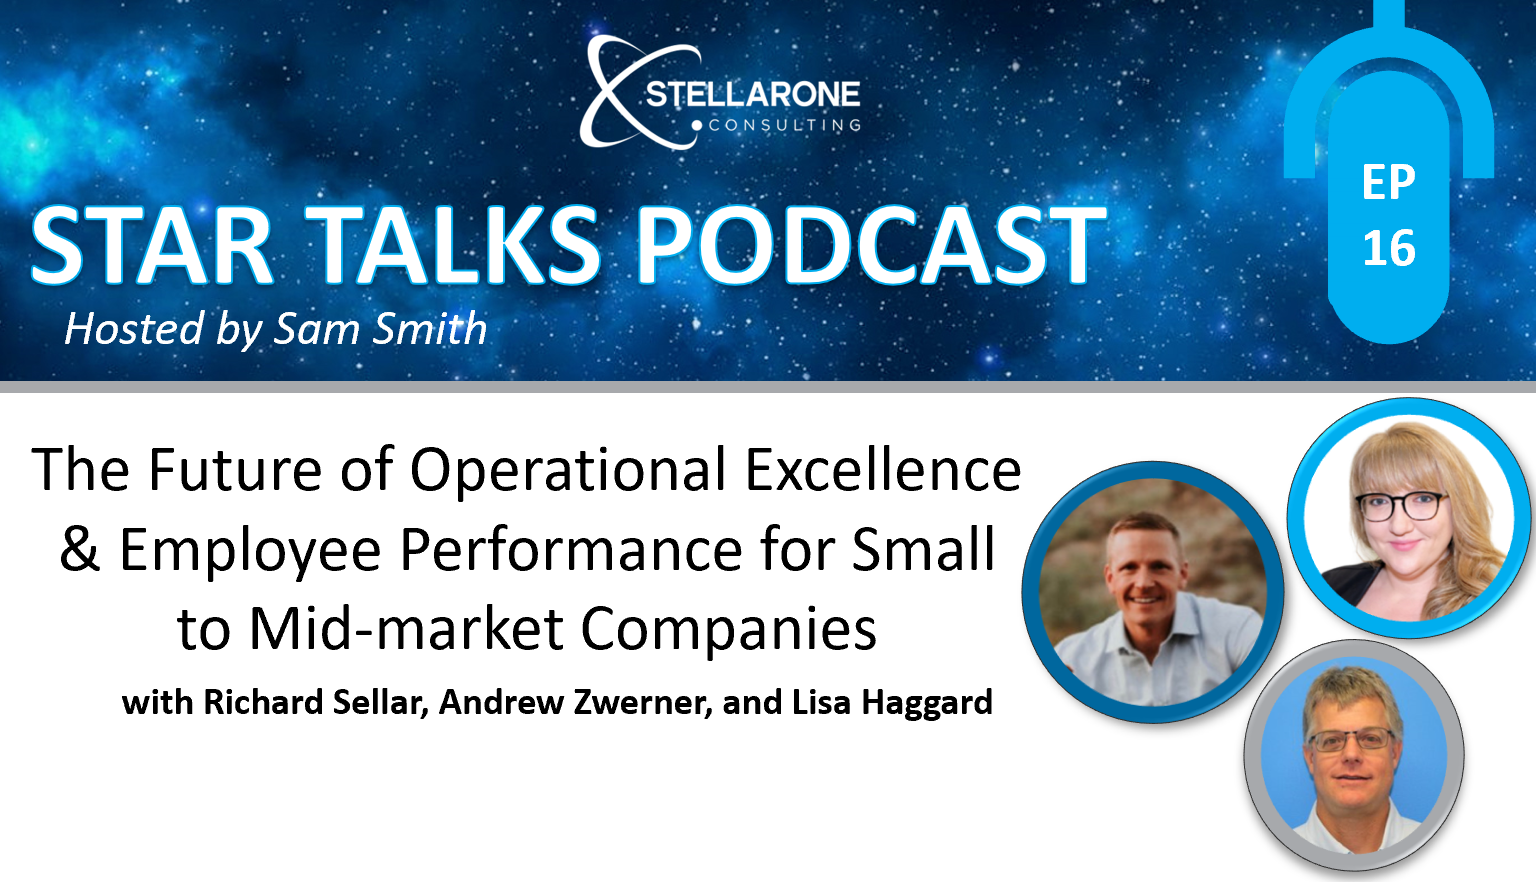 PODCAST: The Future of Operational Excellence & Employee Performance for Small to Mid-market Companies